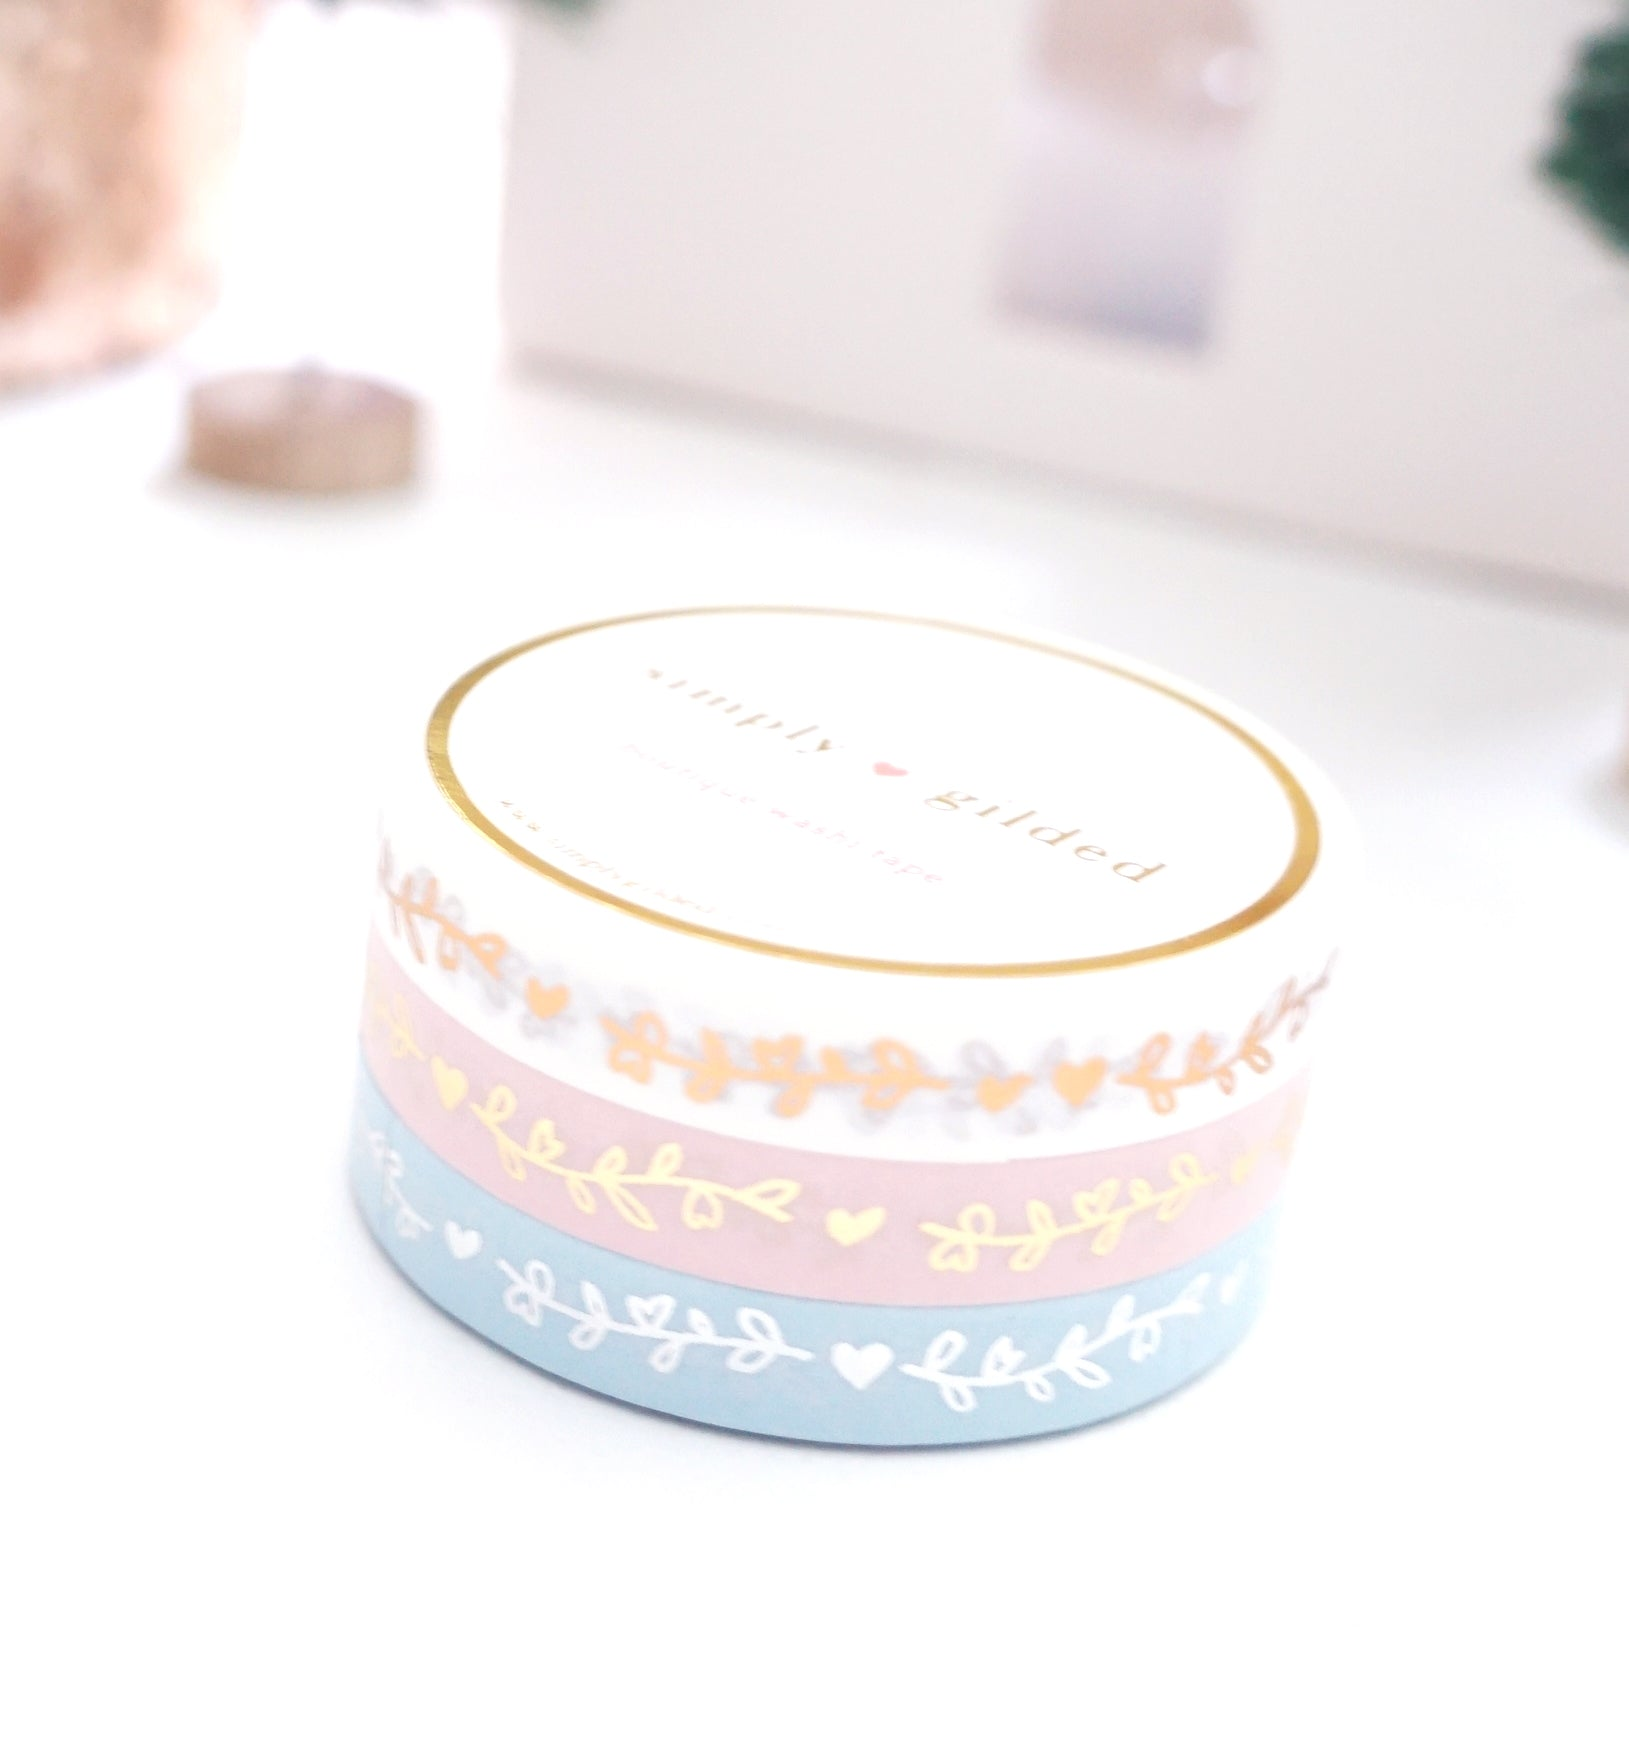 WASHI TAPE 7.5mm set of 3 - SNOW BELLE'S HEART & VINE + ROSE gold/Light GOLD/SILVER foil (November 19 Holiday Release)